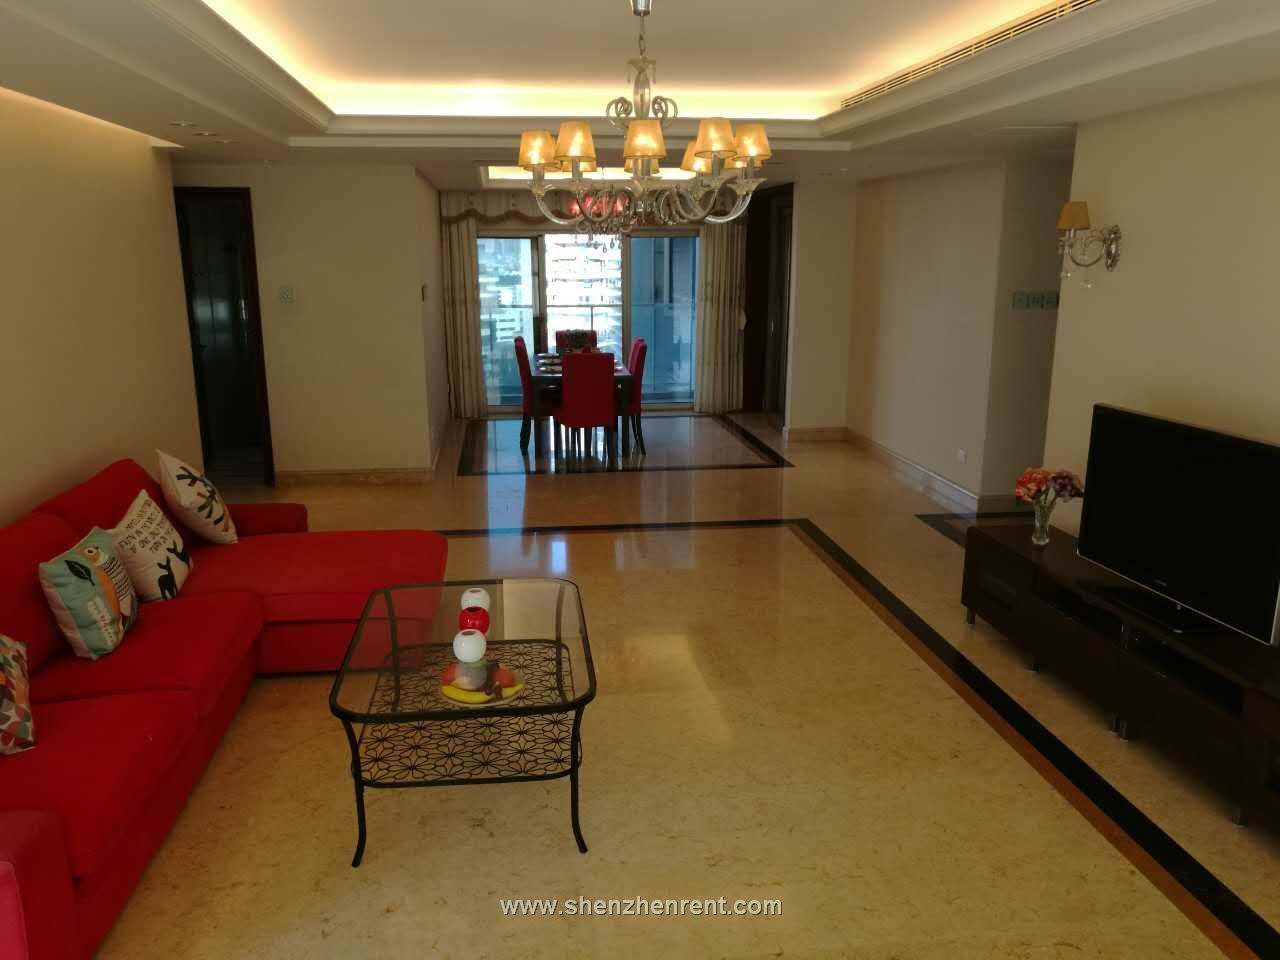 Nice 4 bedrooms apartment in shekou mont orchid for rent